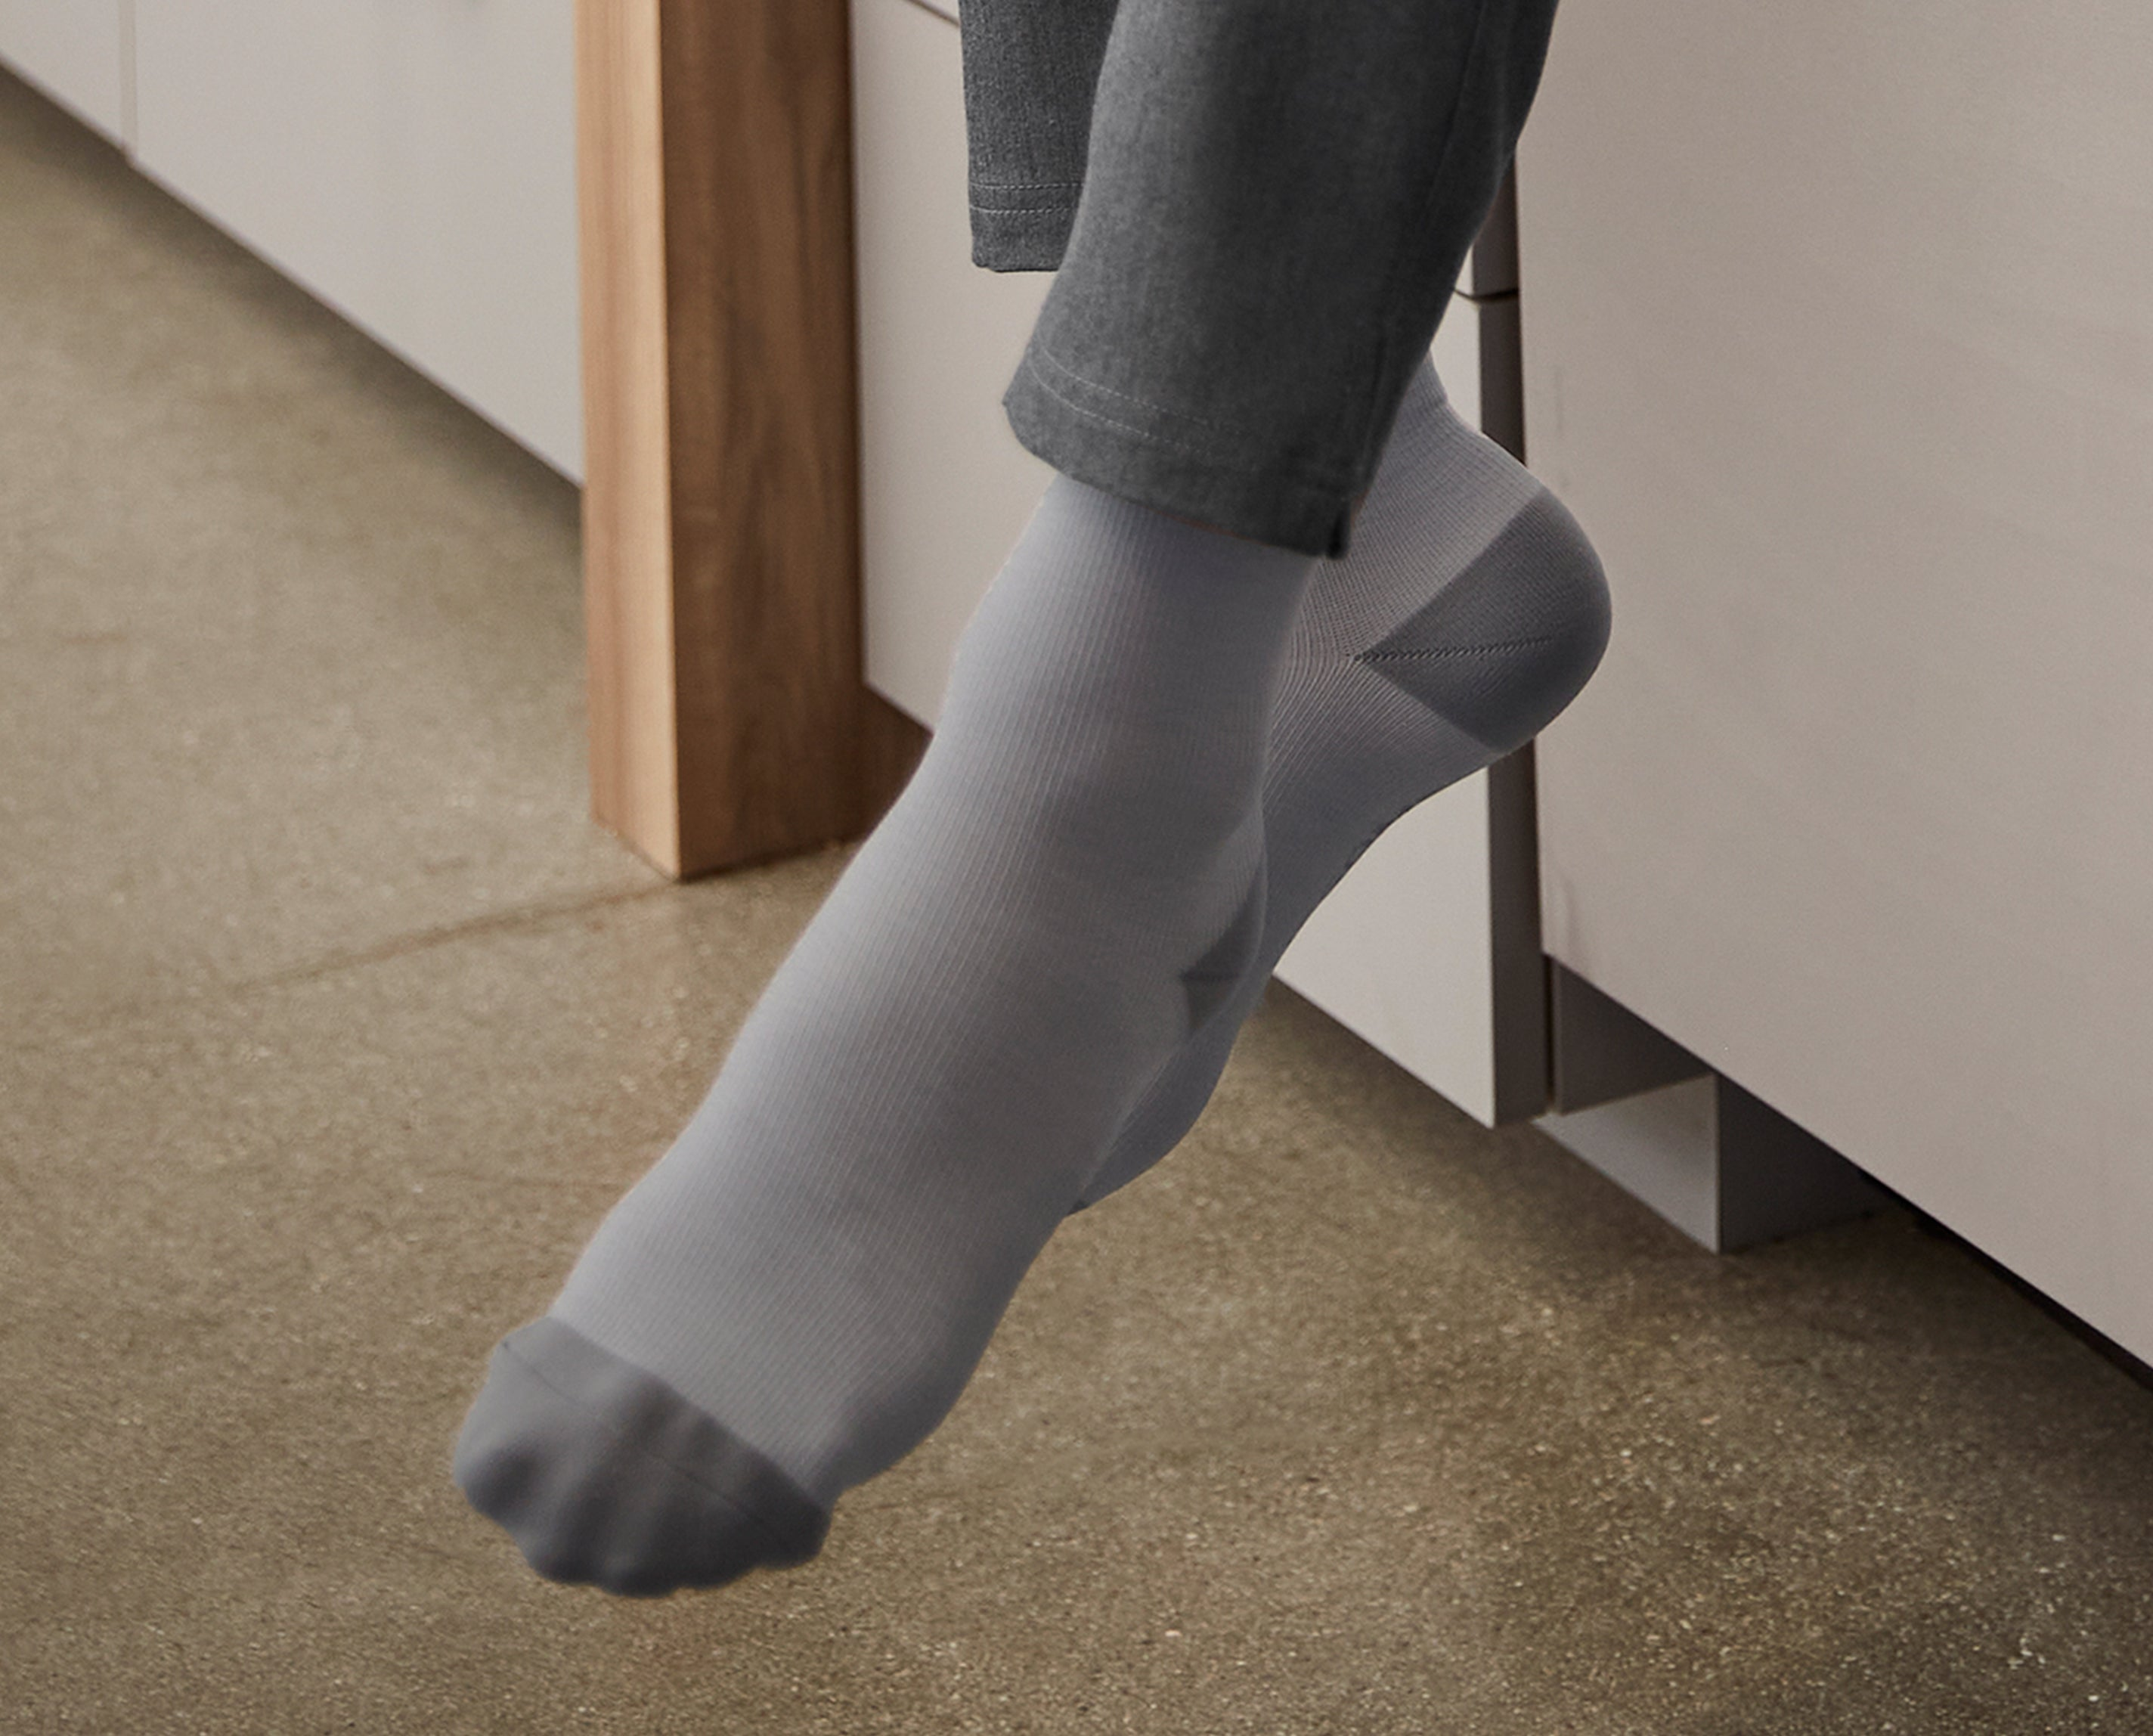 Night mode! Our new Night Shift Compression Socks were designed to brighten your night shift, literally. Glow-in-the-dark moons and stars illuminate your socks and 360° seamless compression helps relieve your achy legs.